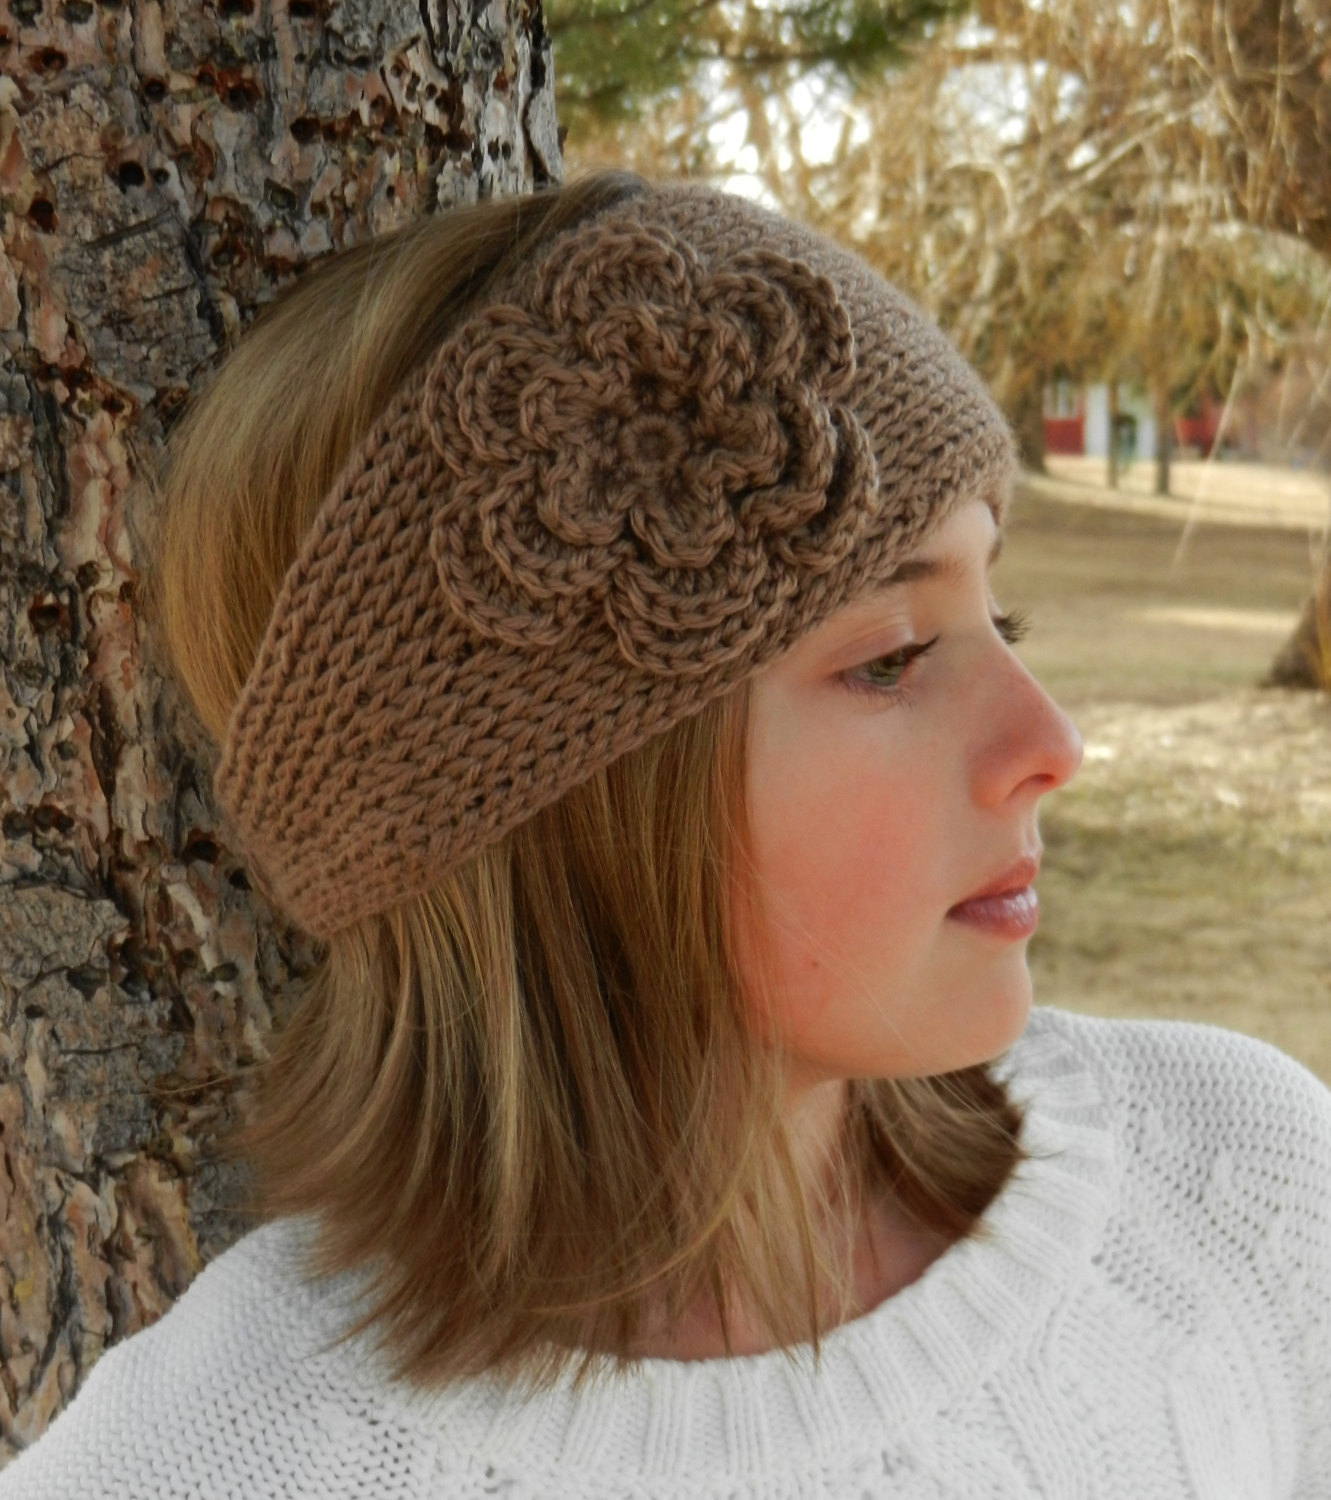 Knit Headband Pattern With Flower Tunisian Knit Look Crochet Headband Pattern With Flower Tunisian Crochet Headband Earwarmer Pattern With Flower Instant Download